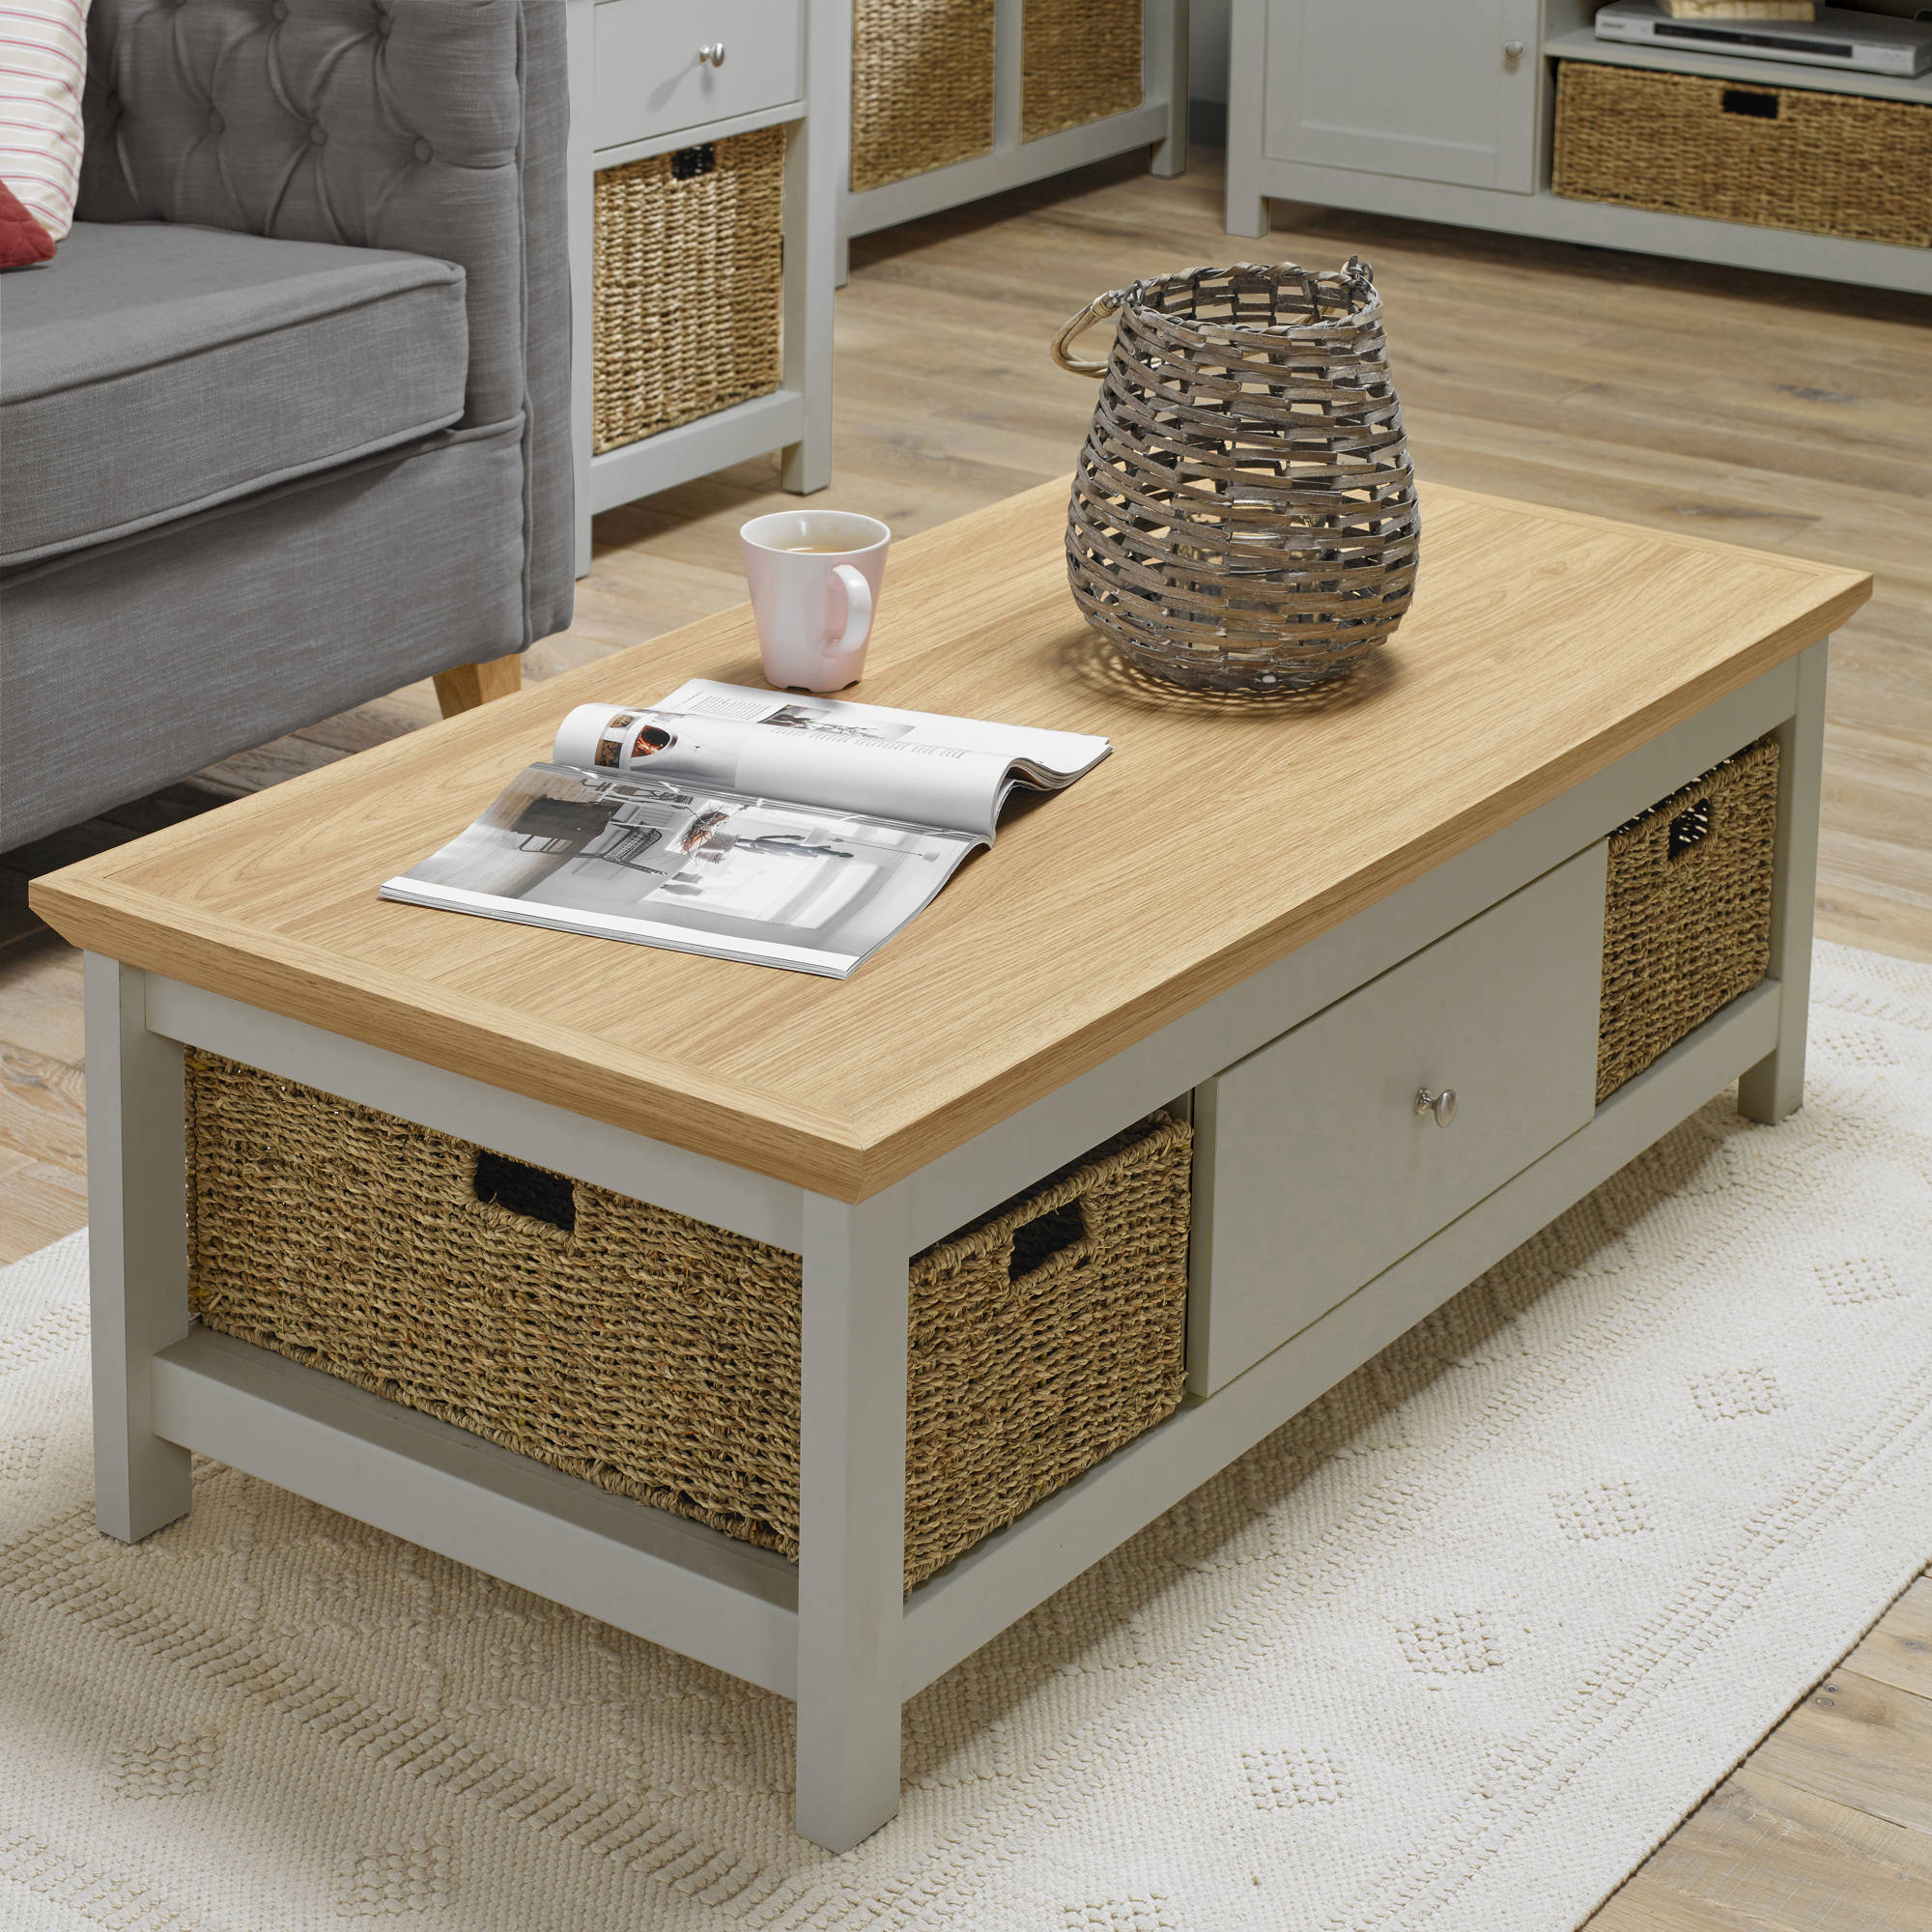 Broadwell Coffee Table in Grey - Ezzo